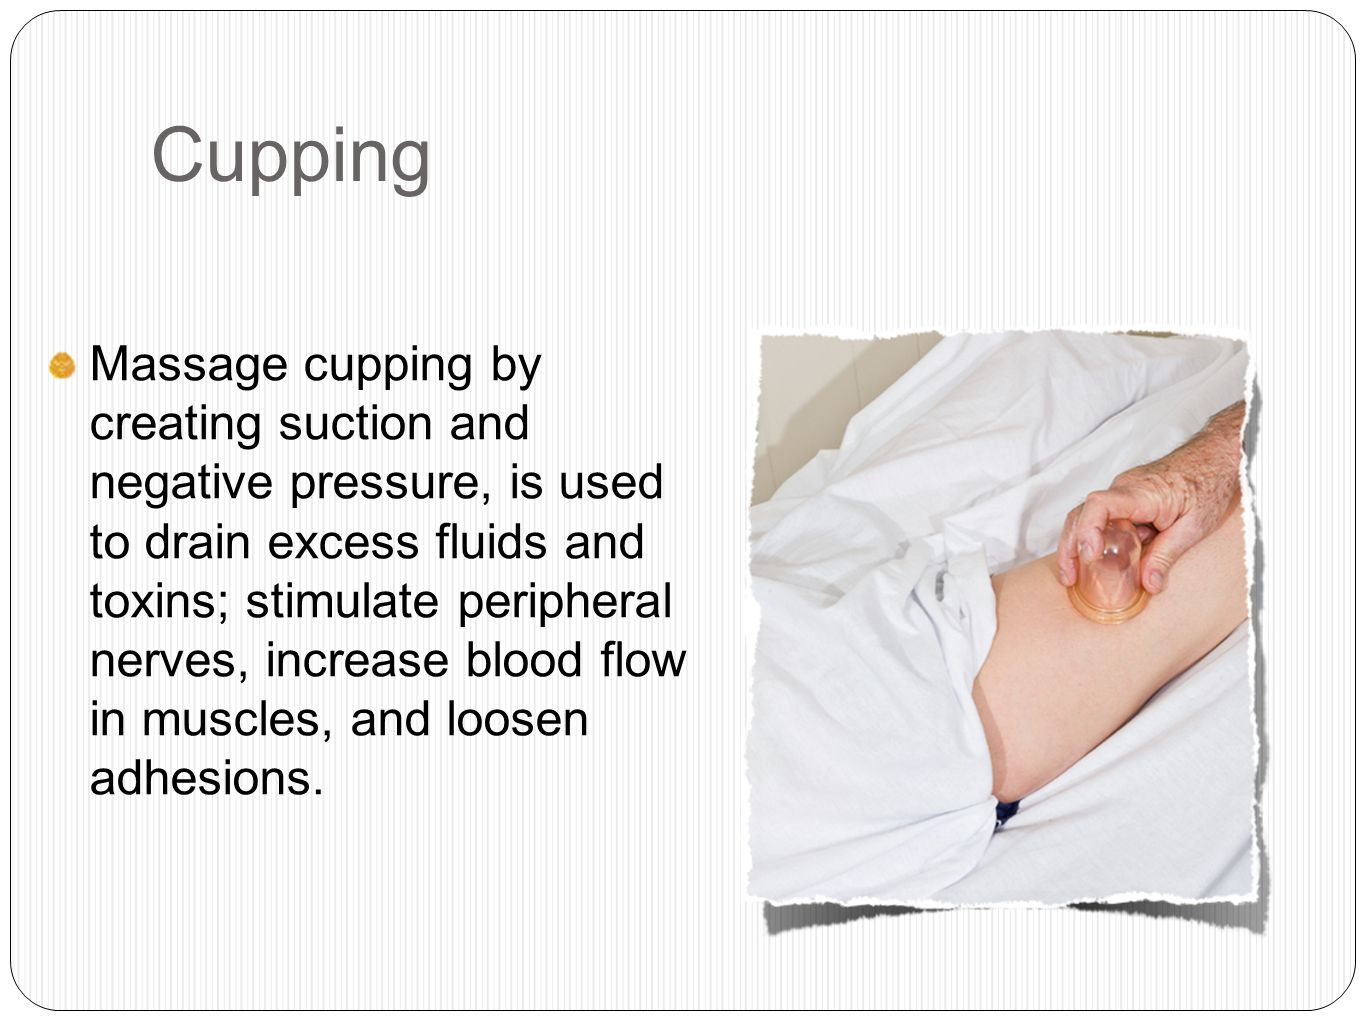 Cupping Massage cupping by creating suction and negative pressure, is used to drain excess fluids and toxins; stimulate peripheral nerves, increase blood flow in muscles, and loosen adhesions.